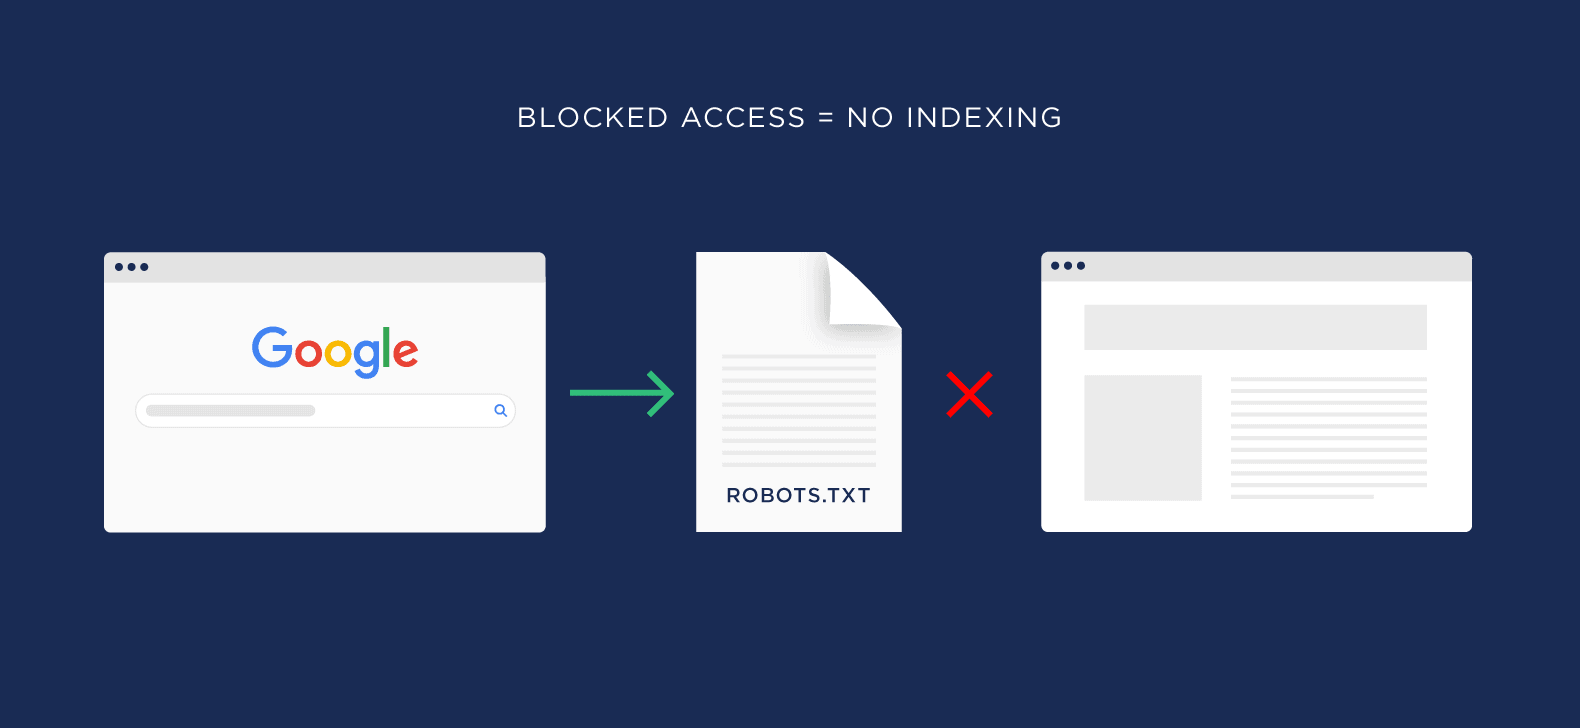 Blocked access noindexing